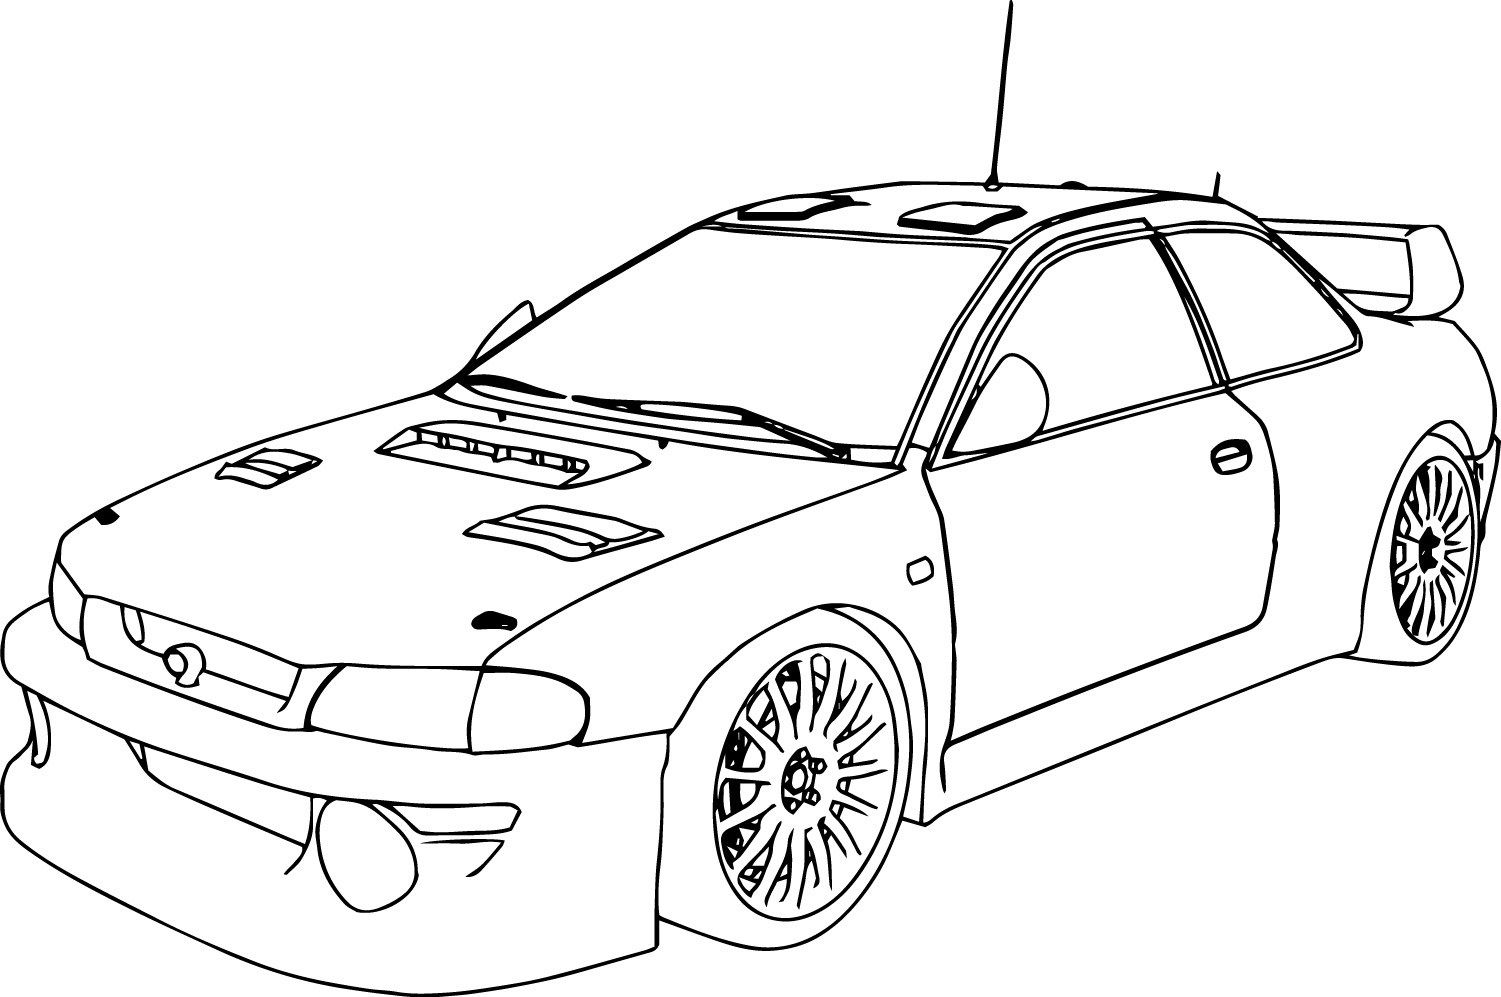 colouring in cars carz craze cars coloring pages cars in colouring